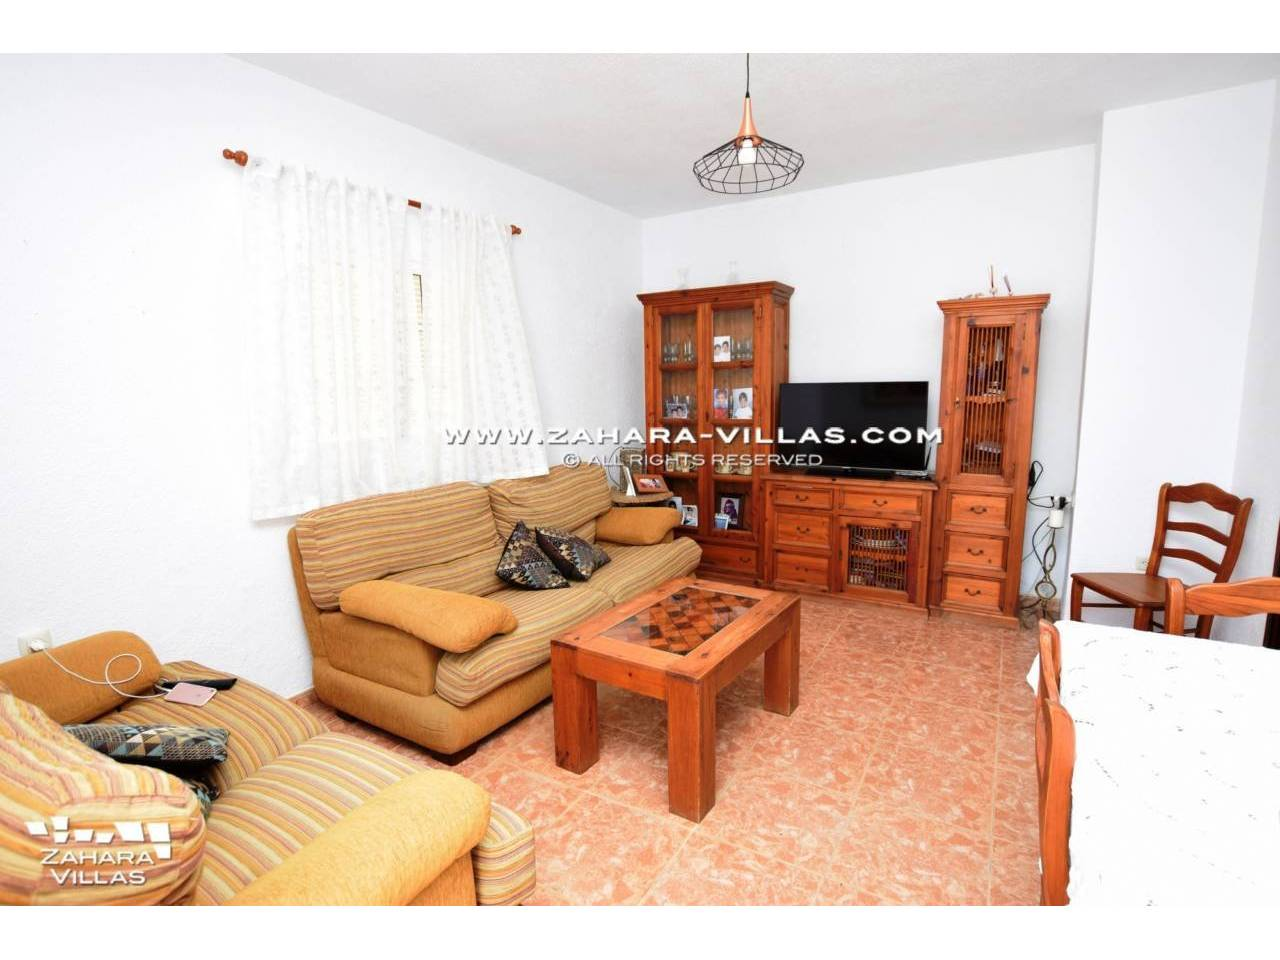 Imagen 9 de House in Avda. Del Pradillo for sale in the town of Zahara de los Atunes